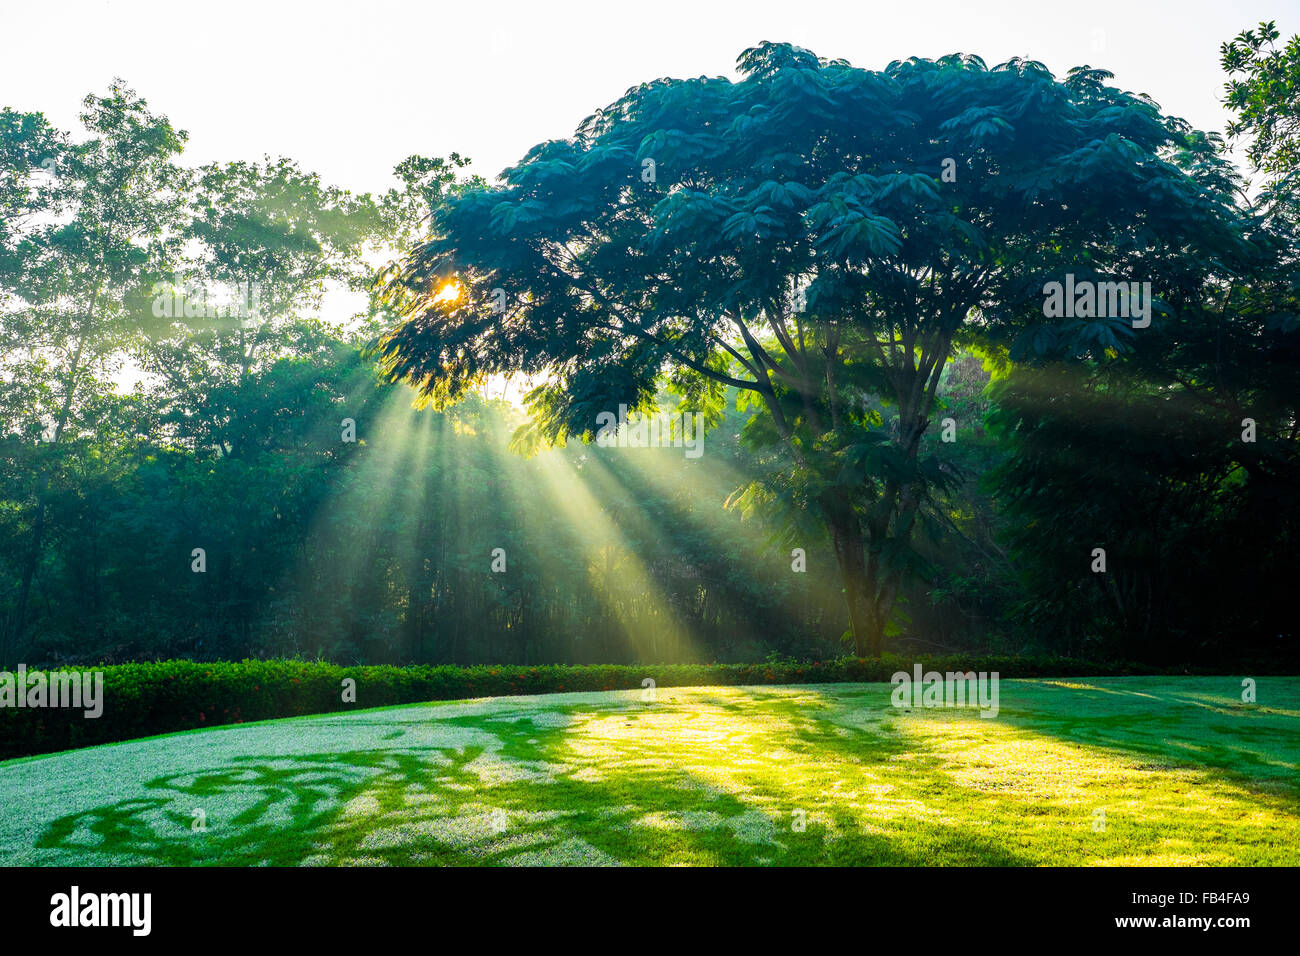 Sunlight shining through tree branches to golf teeing ground. - Stock Image